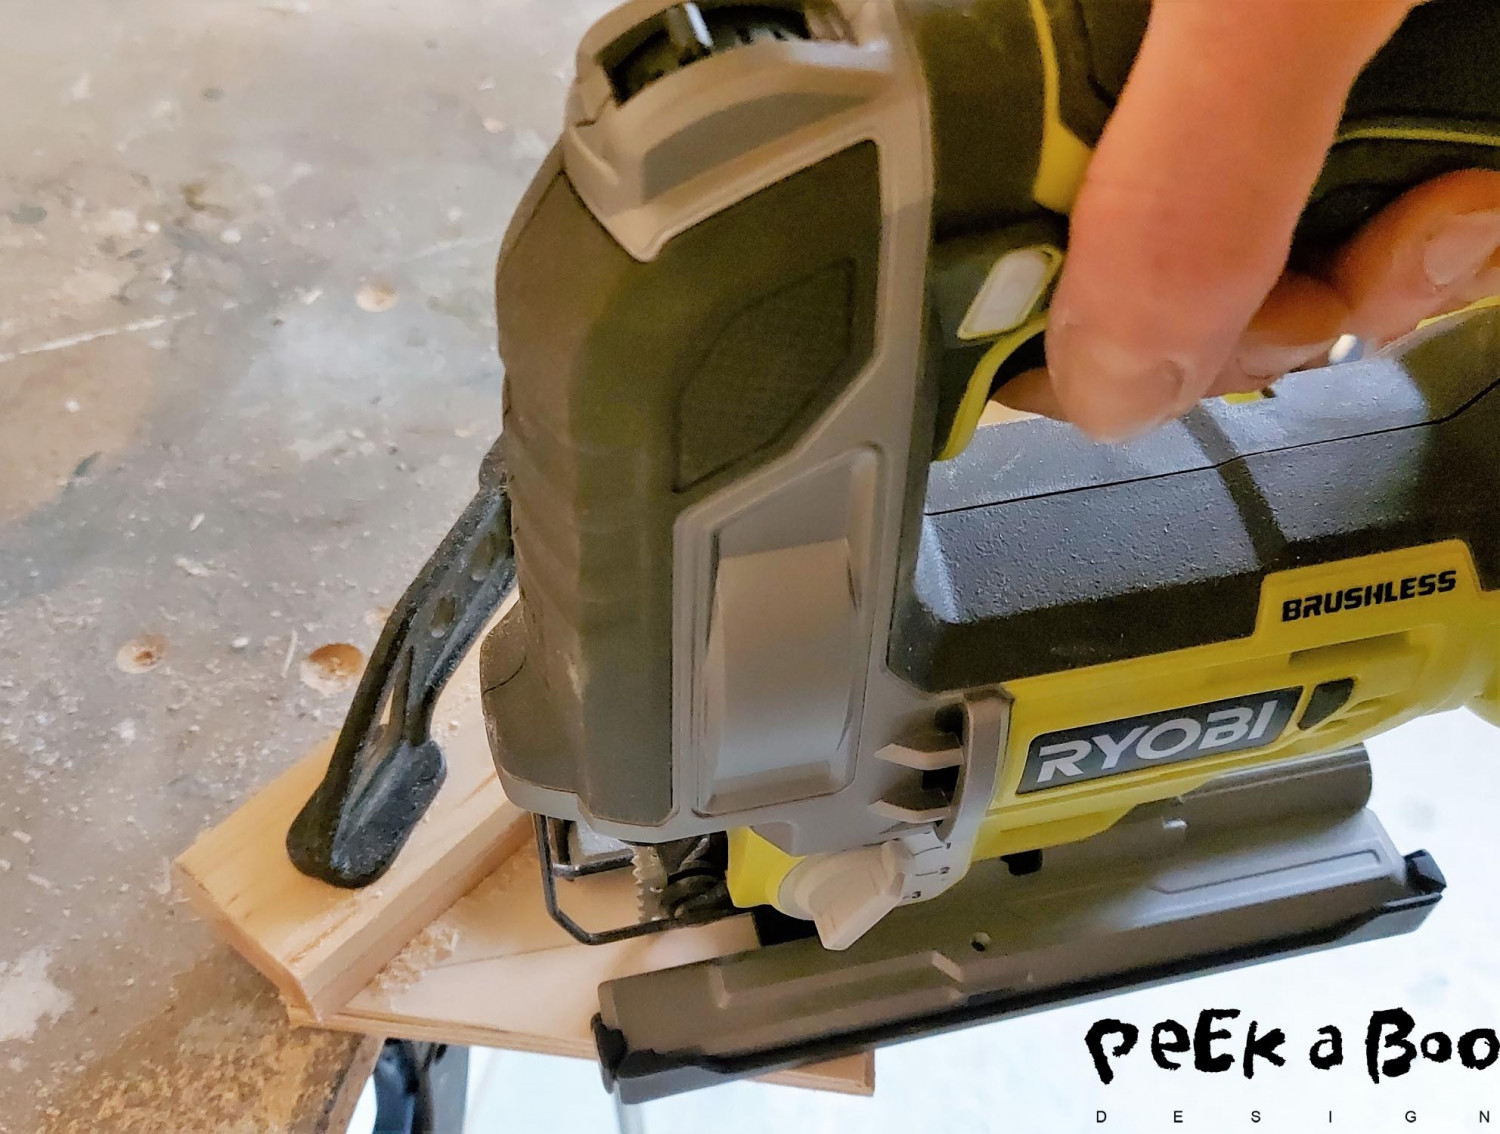 The saw can easily saw through 3 layers of this thin plywood.